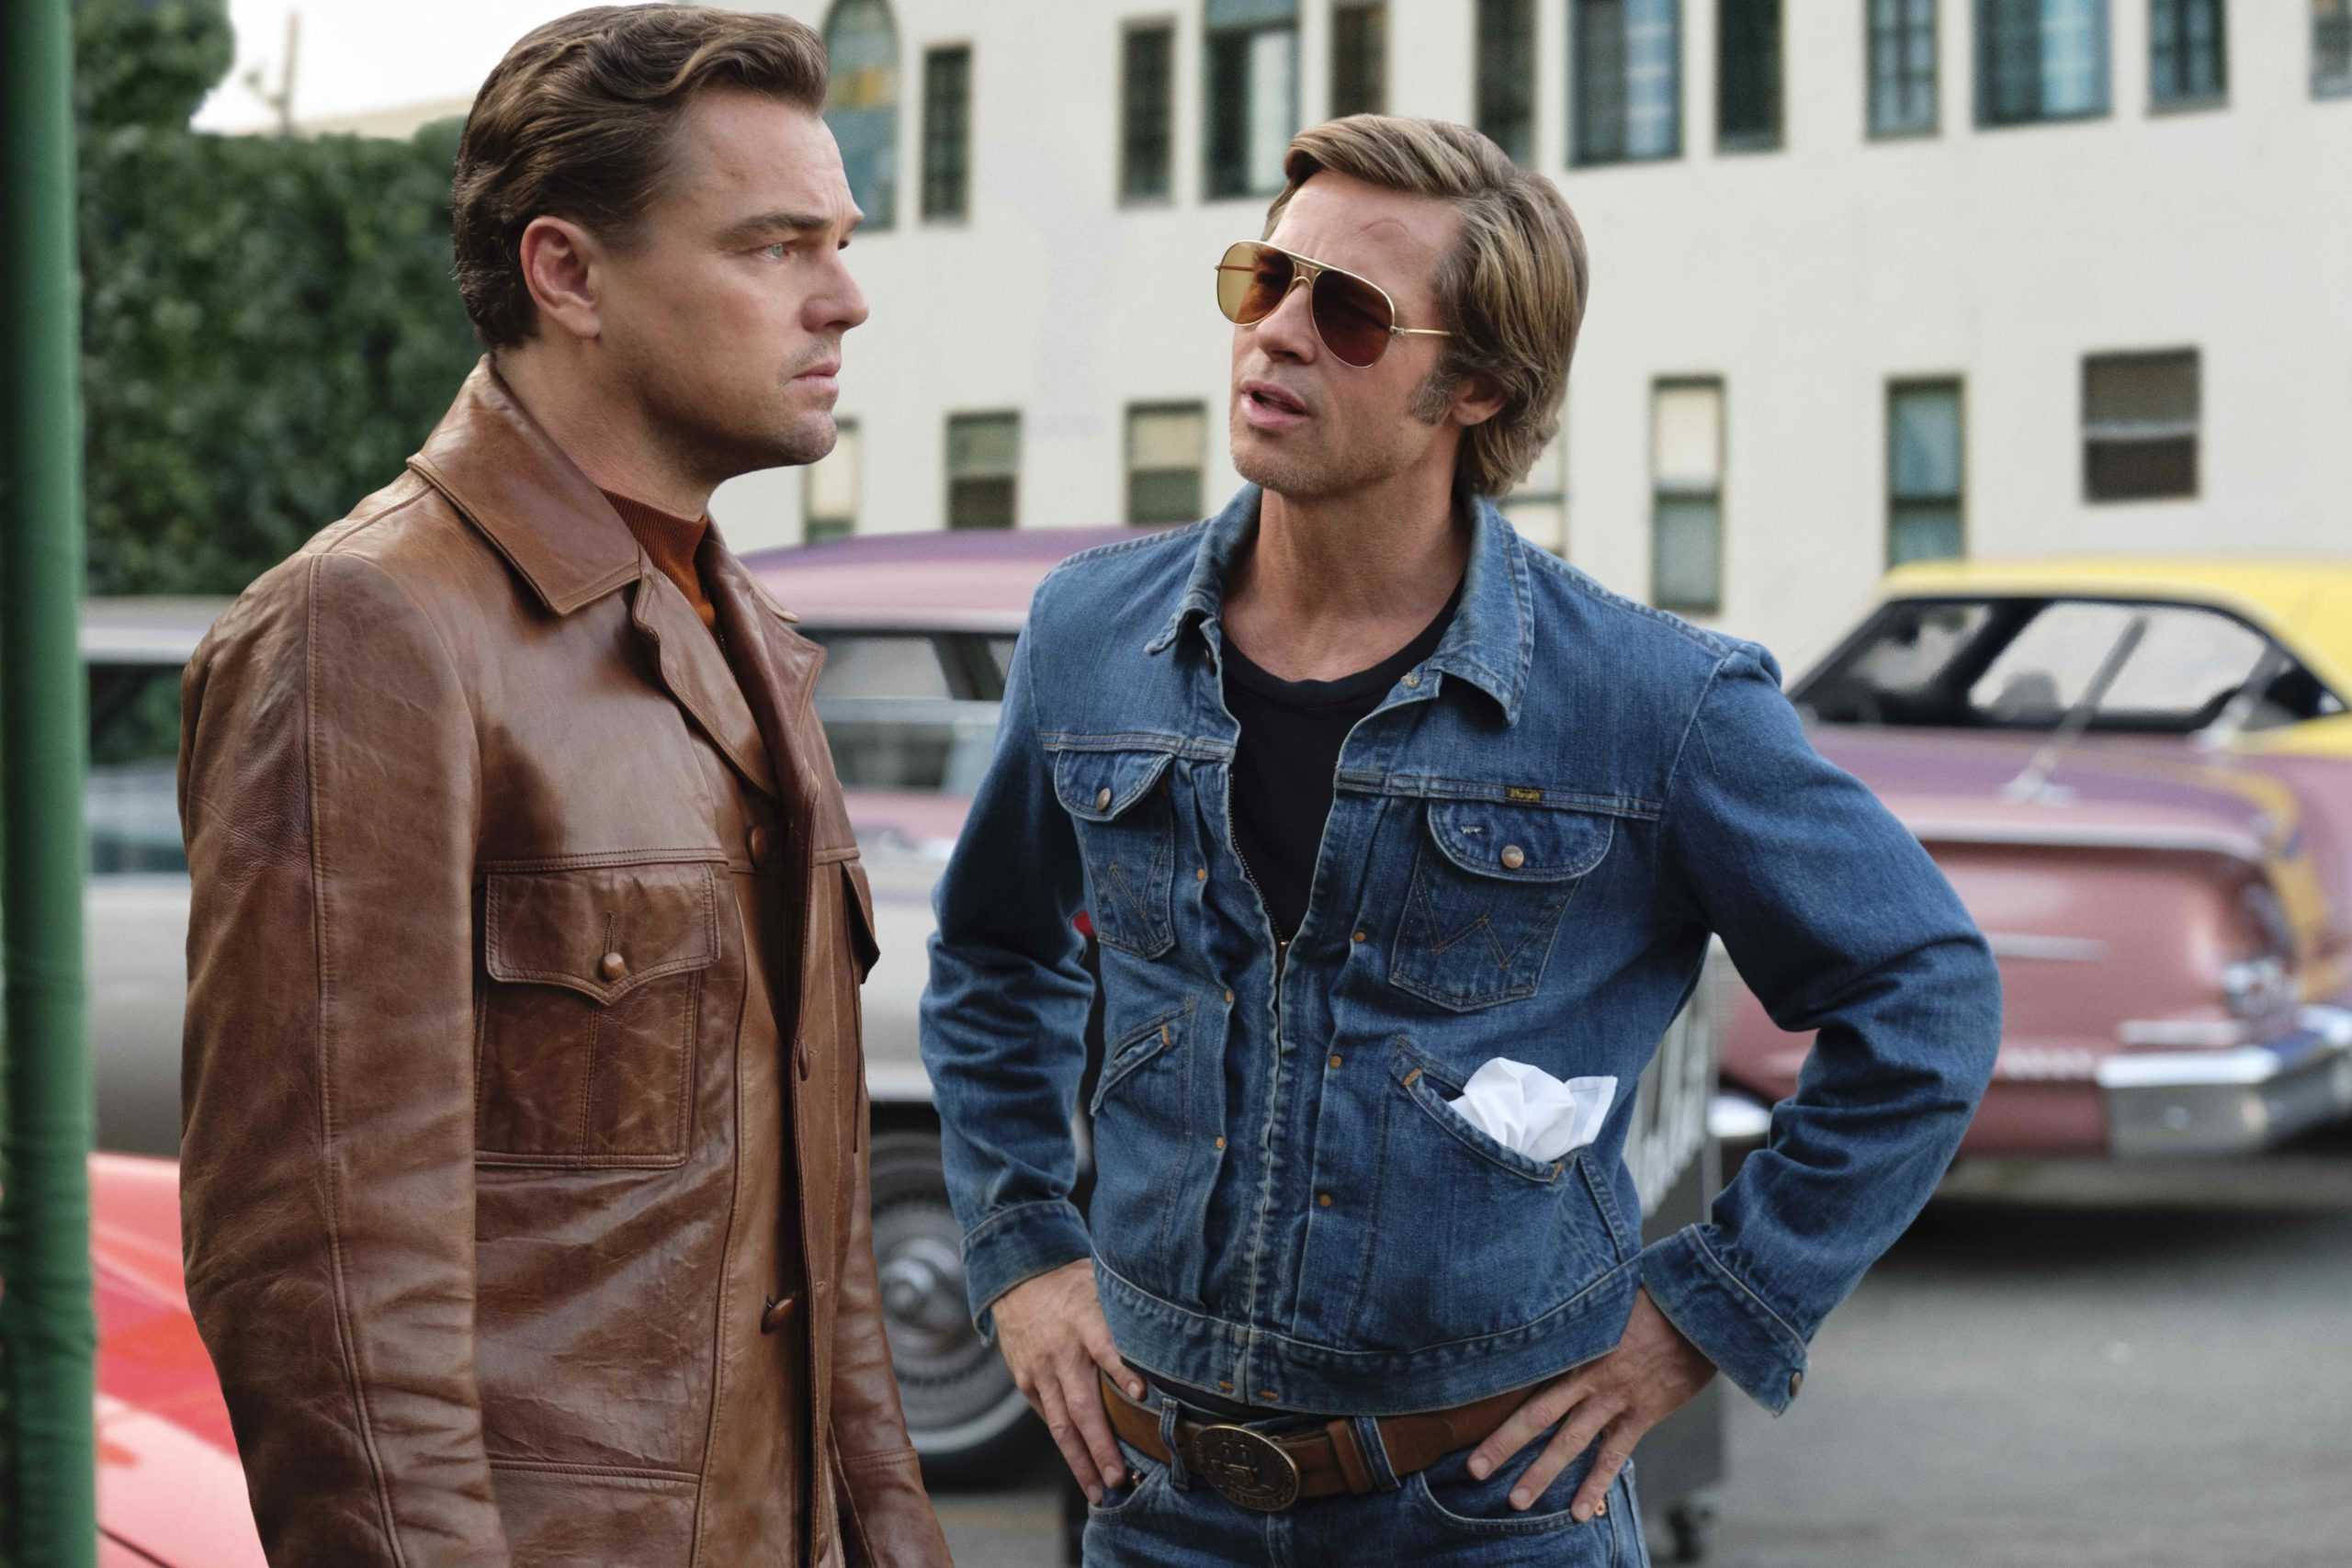 Leonardo DiCaprio e Brad Pitt in C'era una volta a... Hollywood